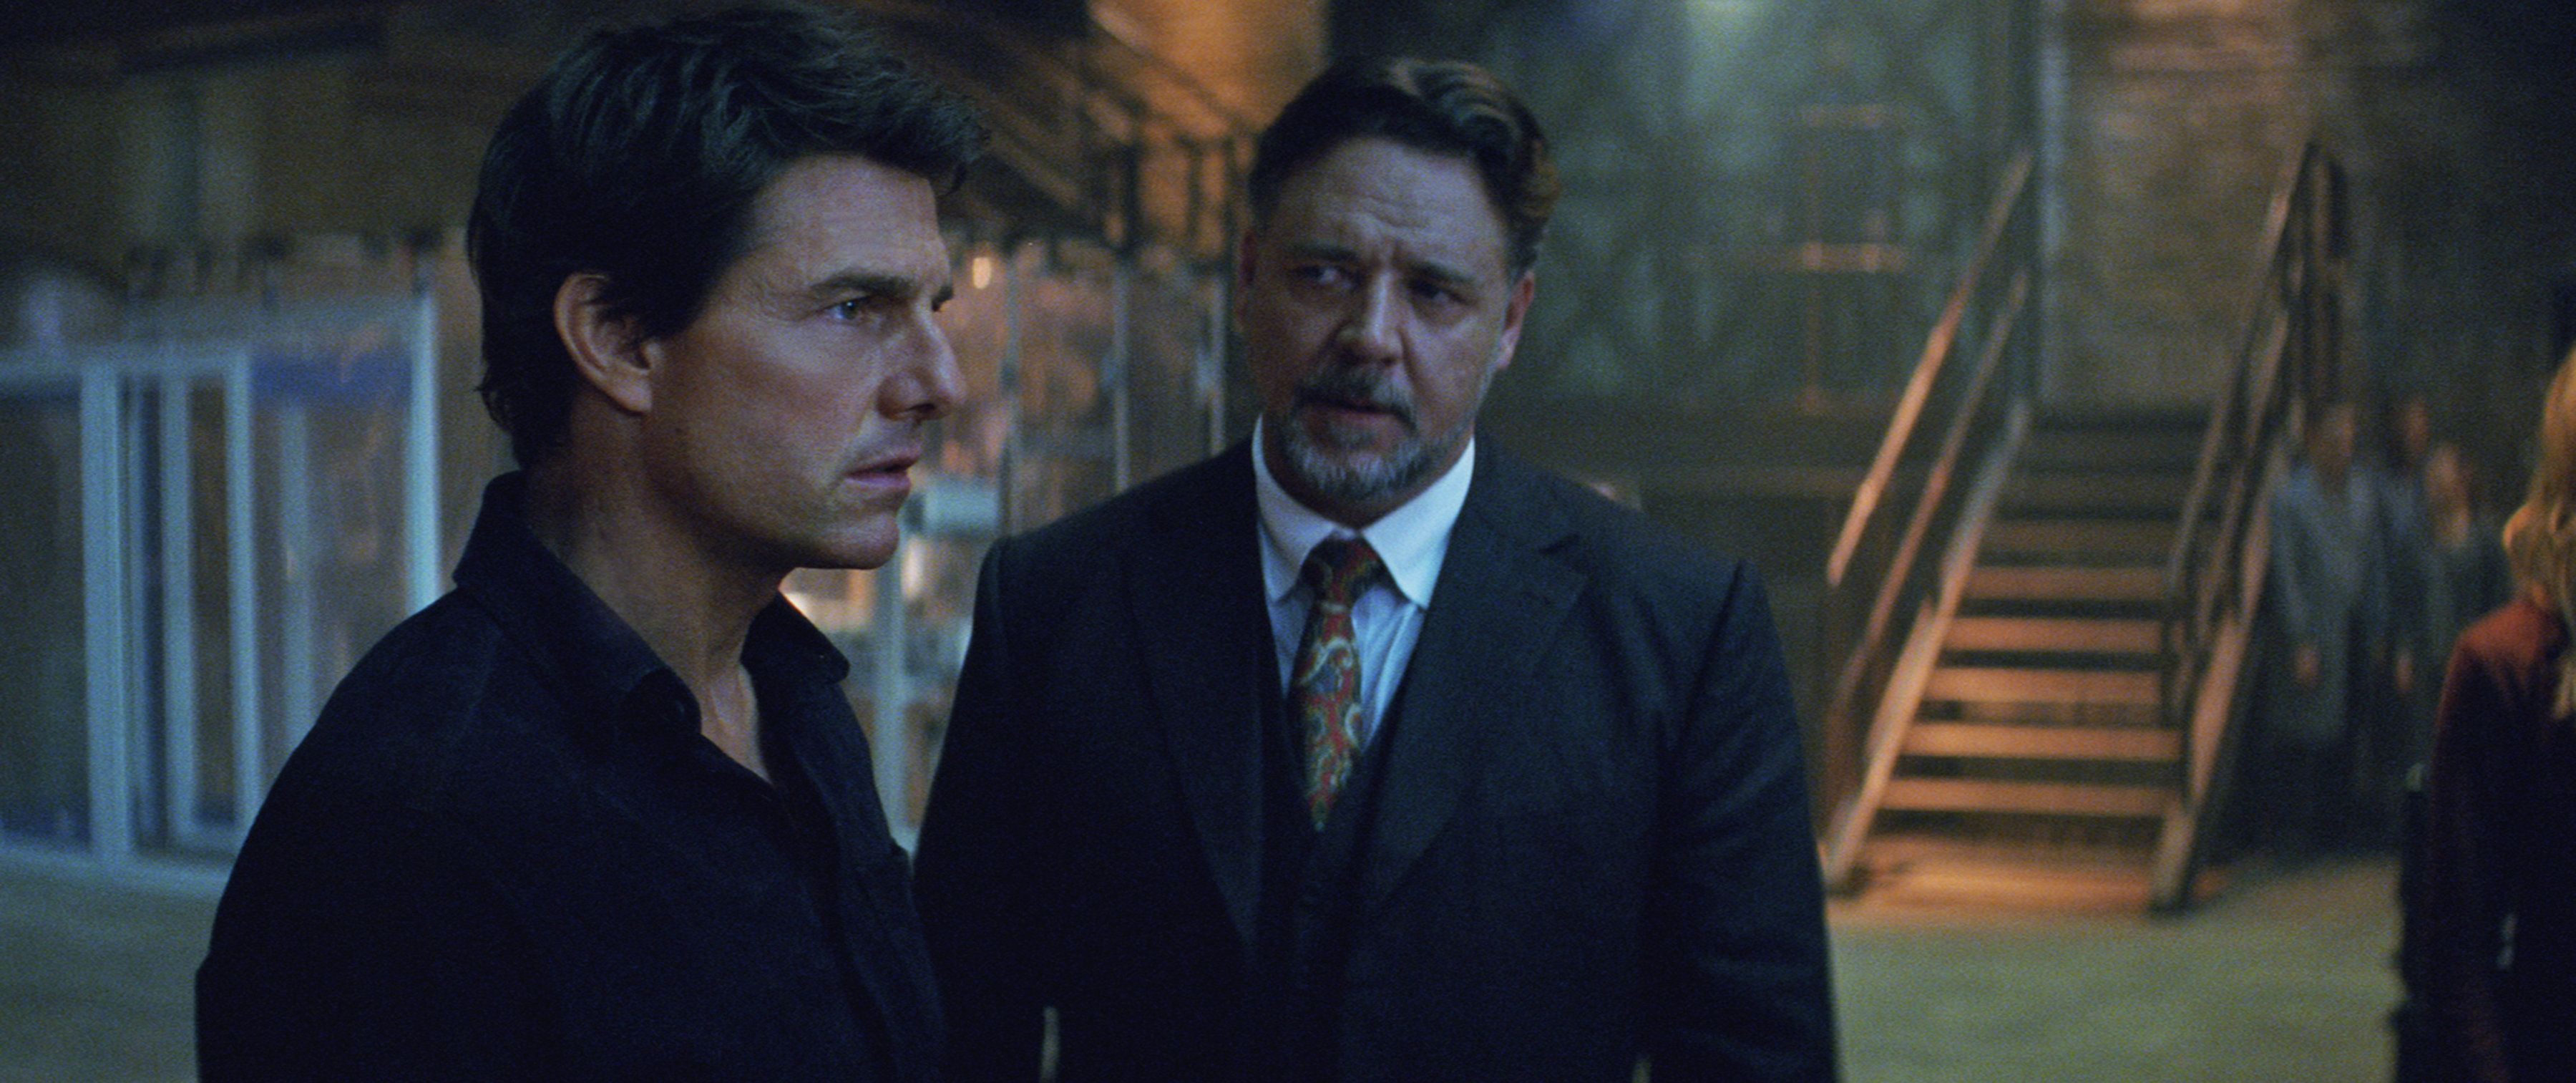 "(L to R) Nick Morton (TOM CRUISE) and Dr. Henry Jekyll (RUSSELL CROWE) in a spectacular, all-new cinematic version of the legend that has fascinated cultures all over the world since the dawn of civilization: ""The Mummy.""  From the sweeping sands of the Middle East through hidden labyrinths under modern-day London, ""The Mummy"" brings a surprising intensity and balance of wonder and thrills in an imaginative new take that ushers in a new world of gods and monsters"